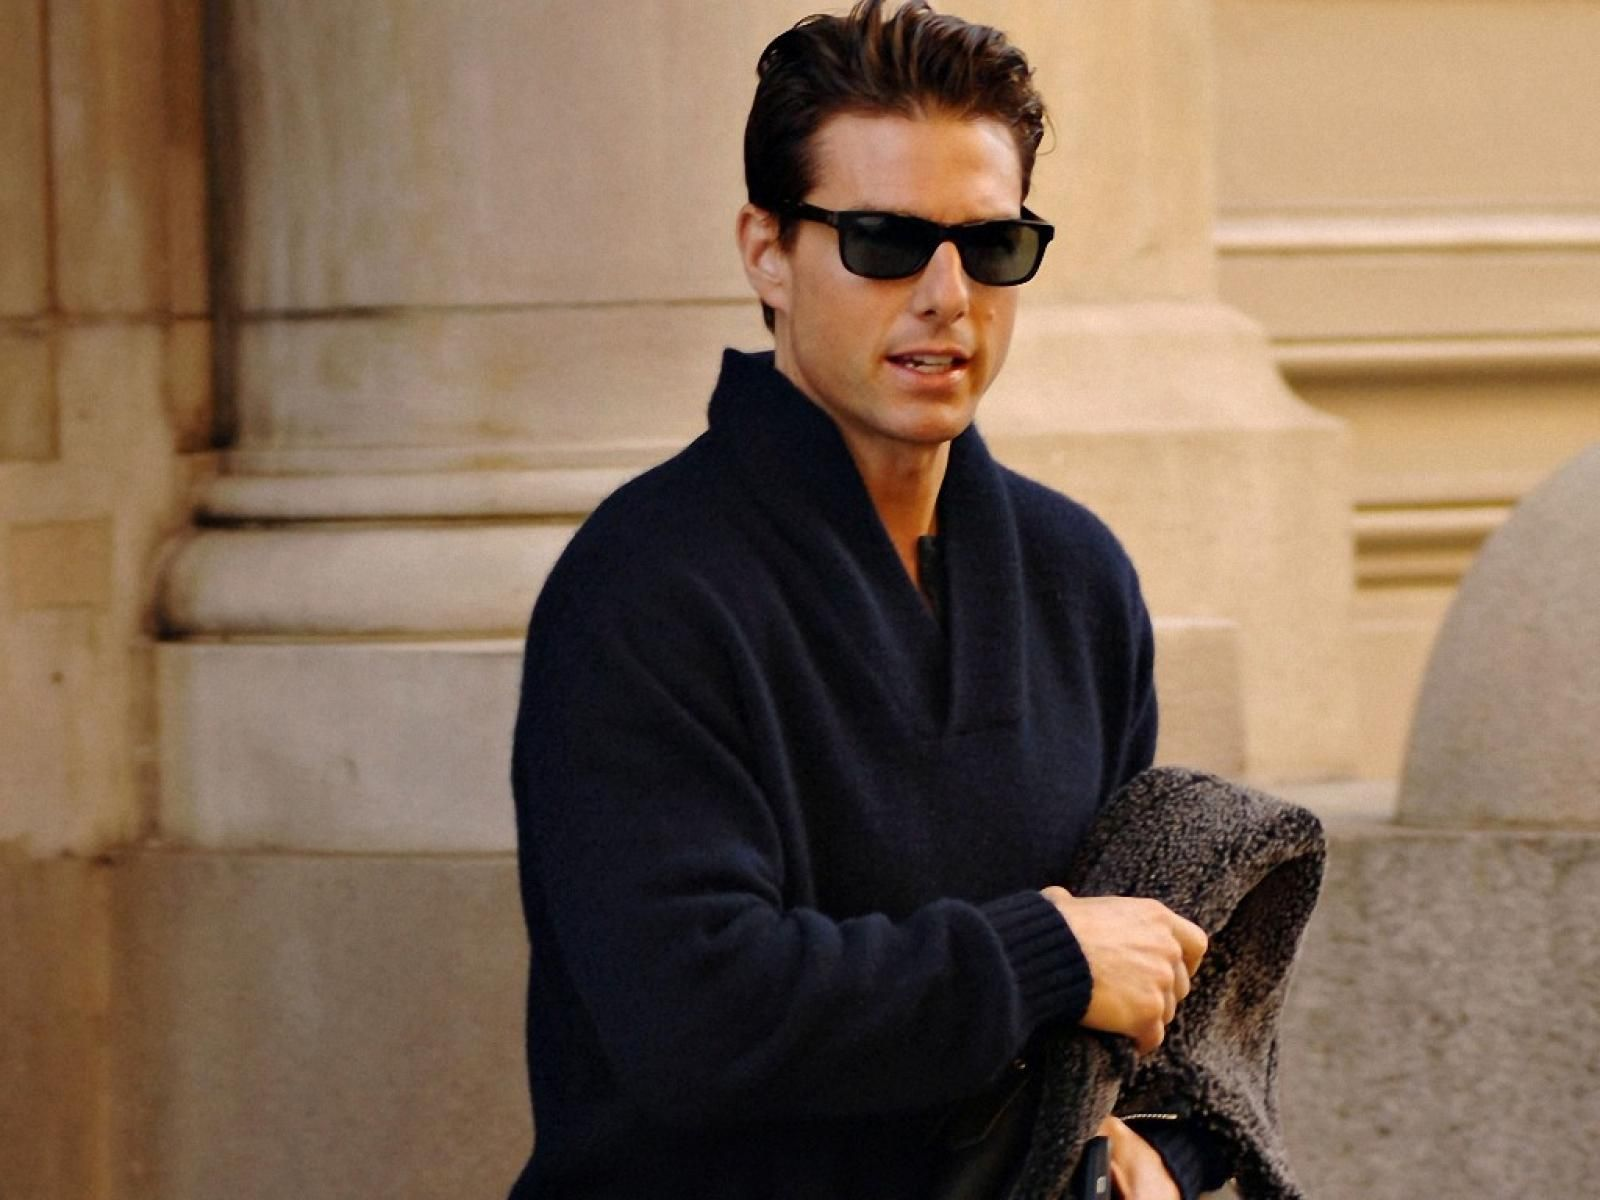 Tom Cruise HD Wallpapers Images Pictures Photos Download 1024768 1600x1200